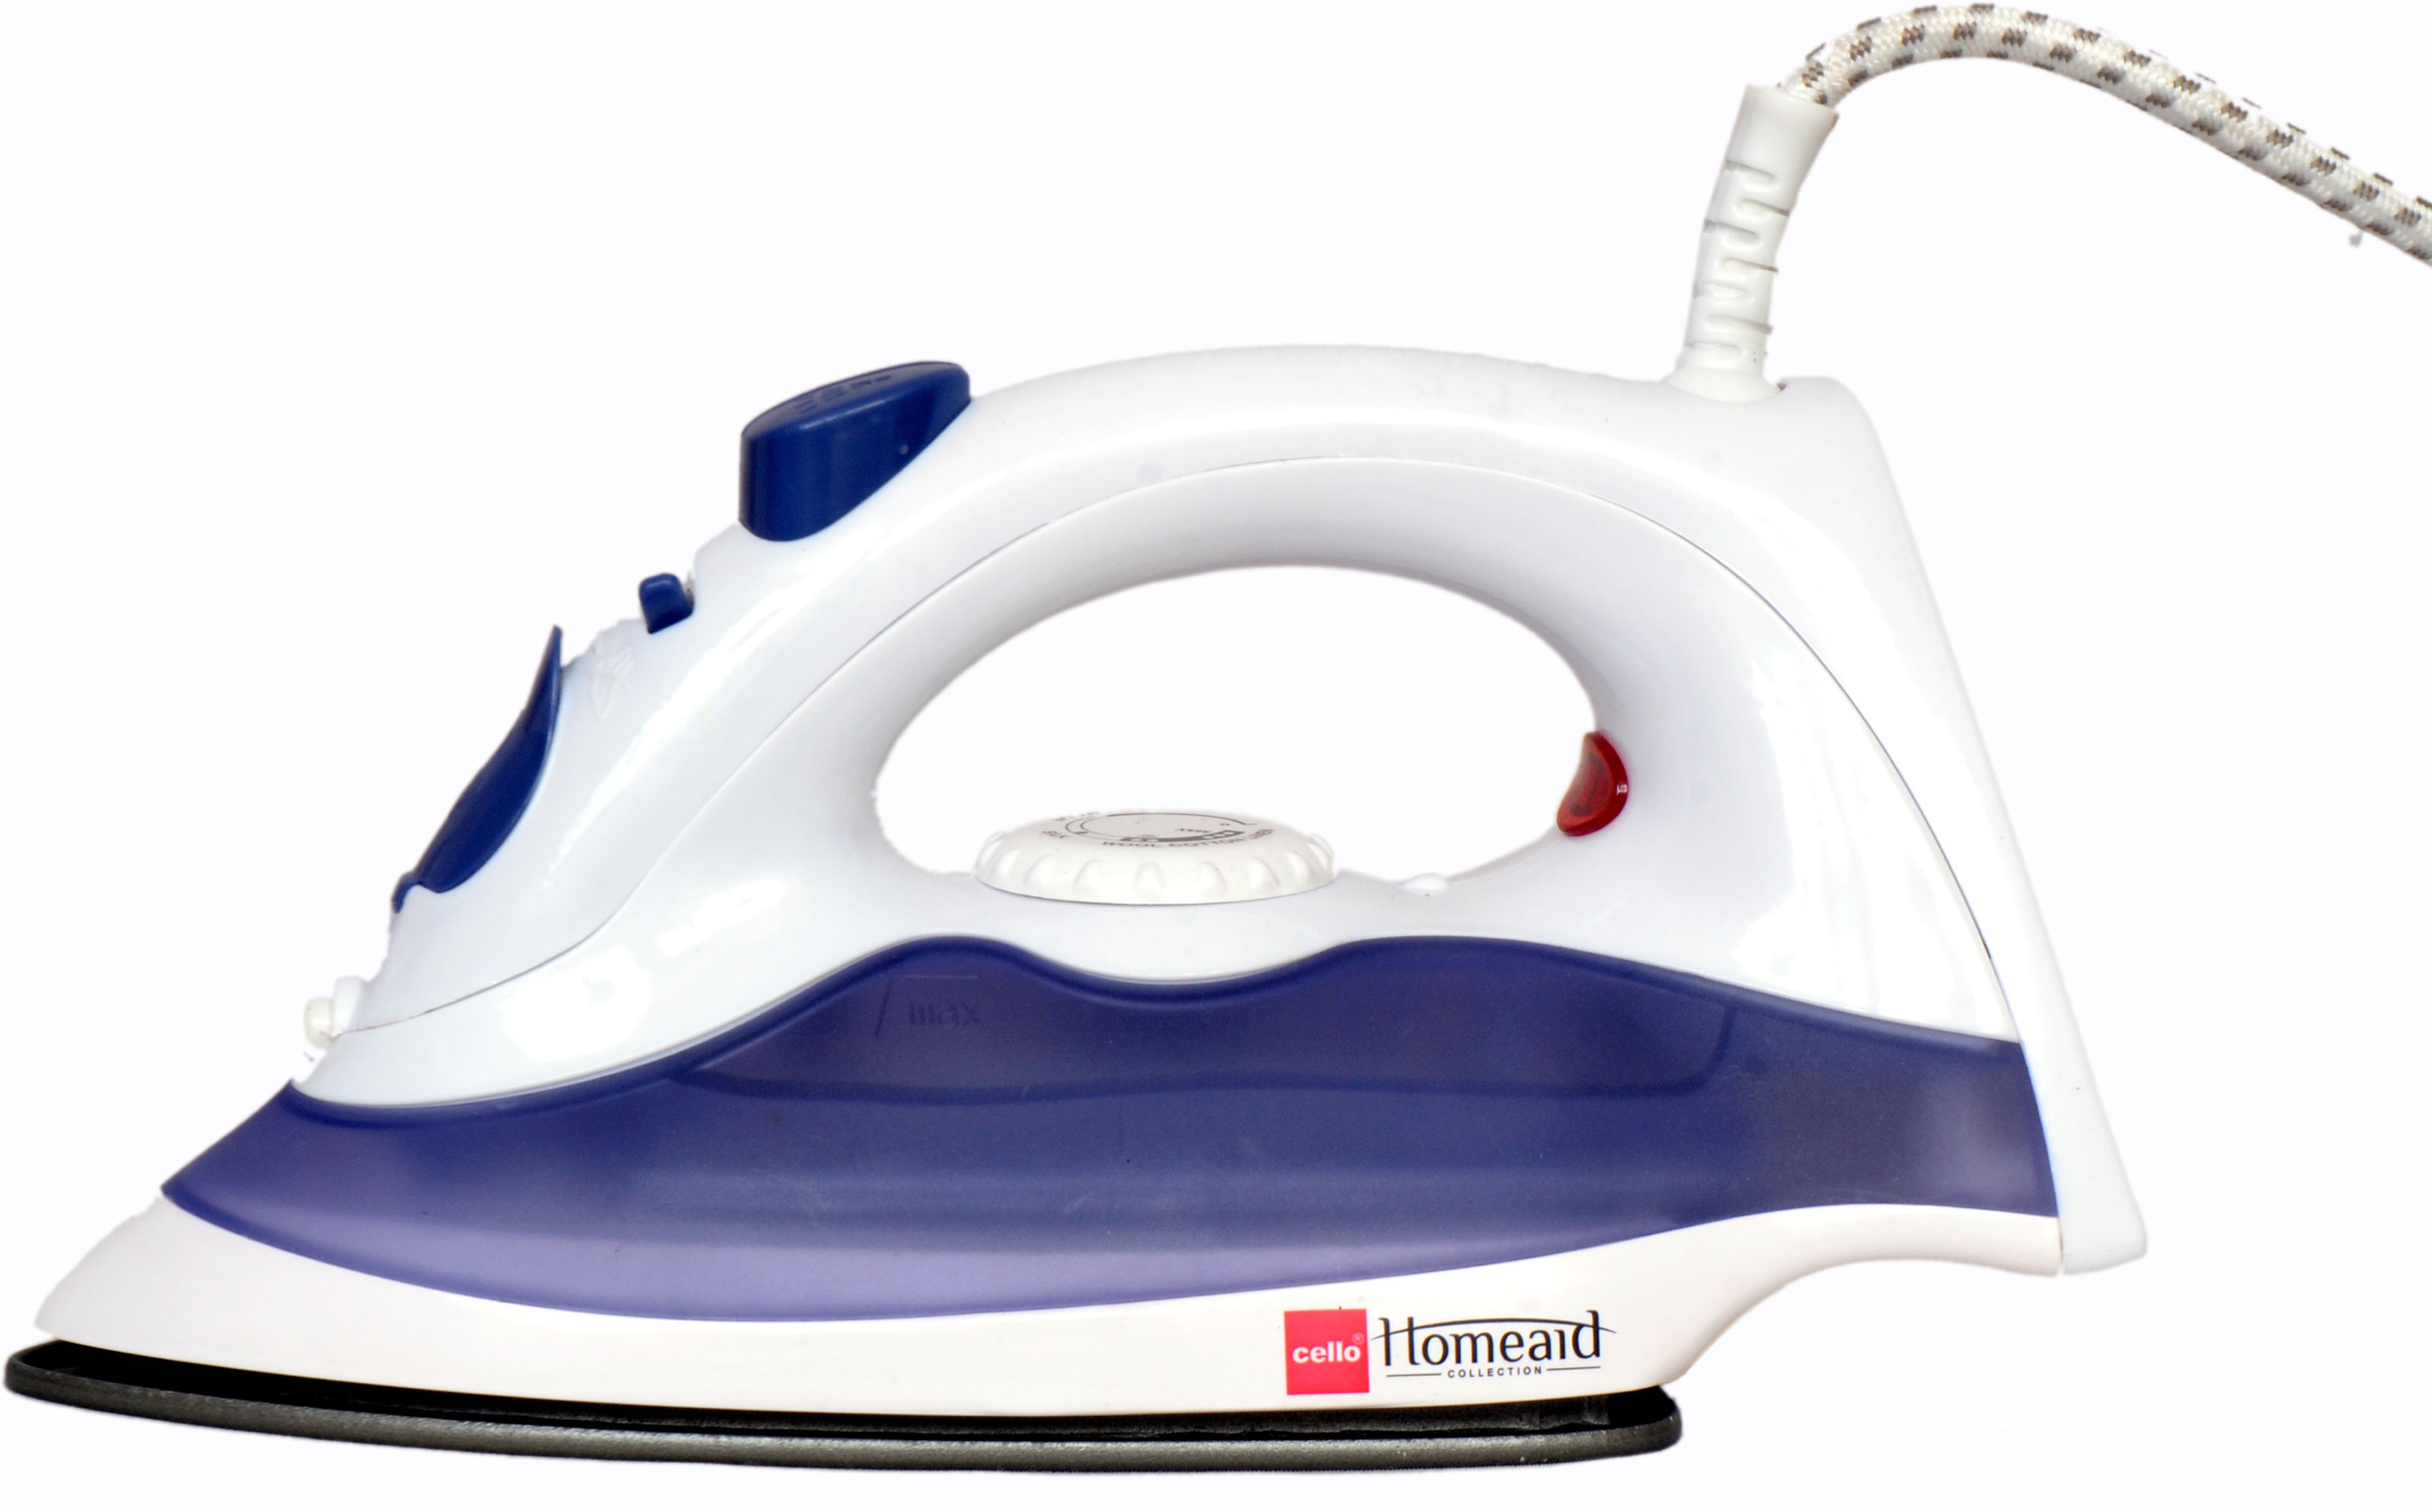 View Cello Cello Steamy Iron 300 (1250W) Violet + 1 Rechargeable Torch Free Steam Iron(Purple) Home Appliances Price Online(Cello)